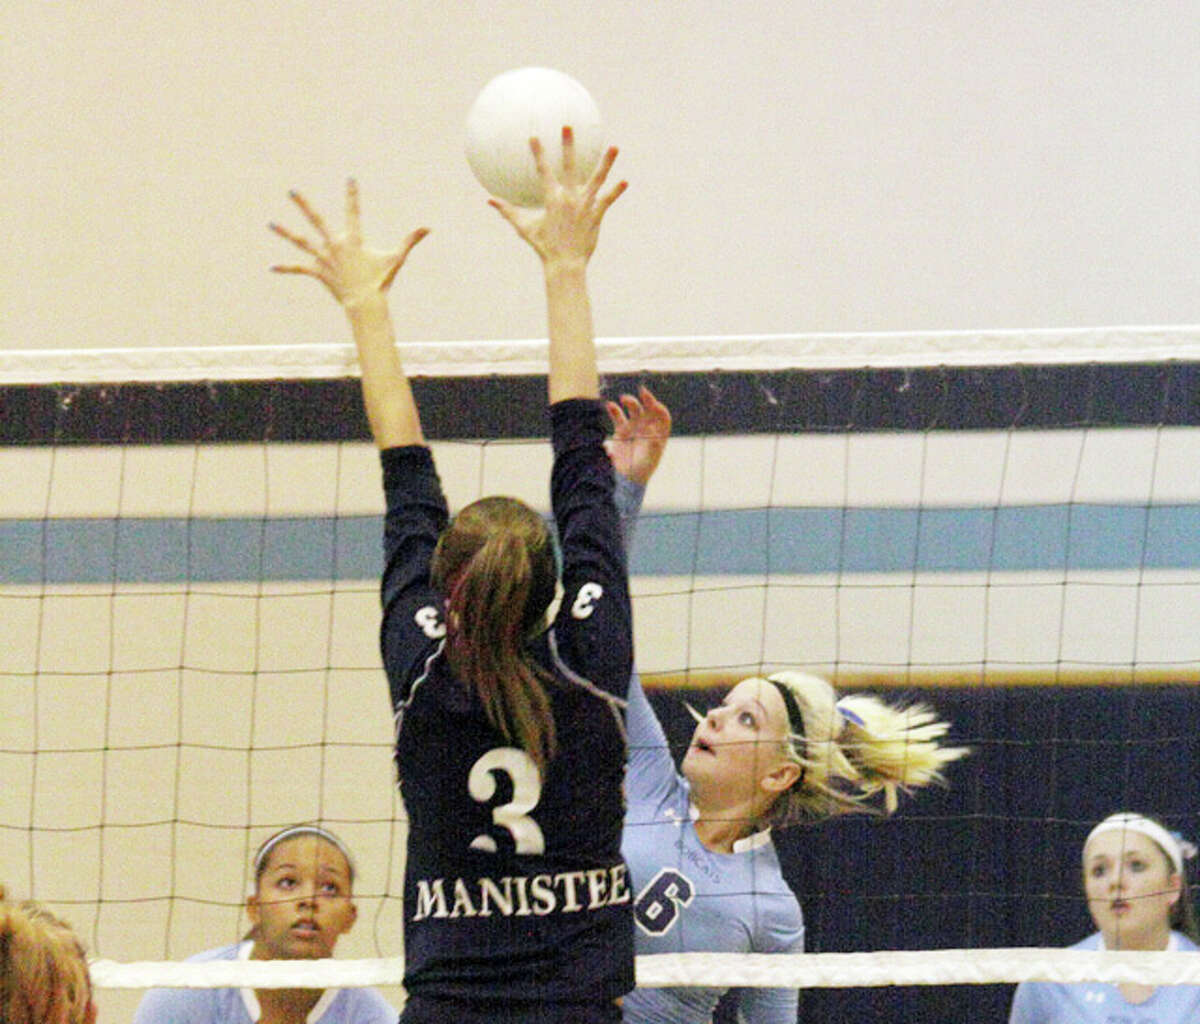 Brethren's Sarah Costello (6) spikes the ball while Manistee's Emma Burns goes up for a block during Thursday's tri-meet. (Dylan Savela/News Advocate)